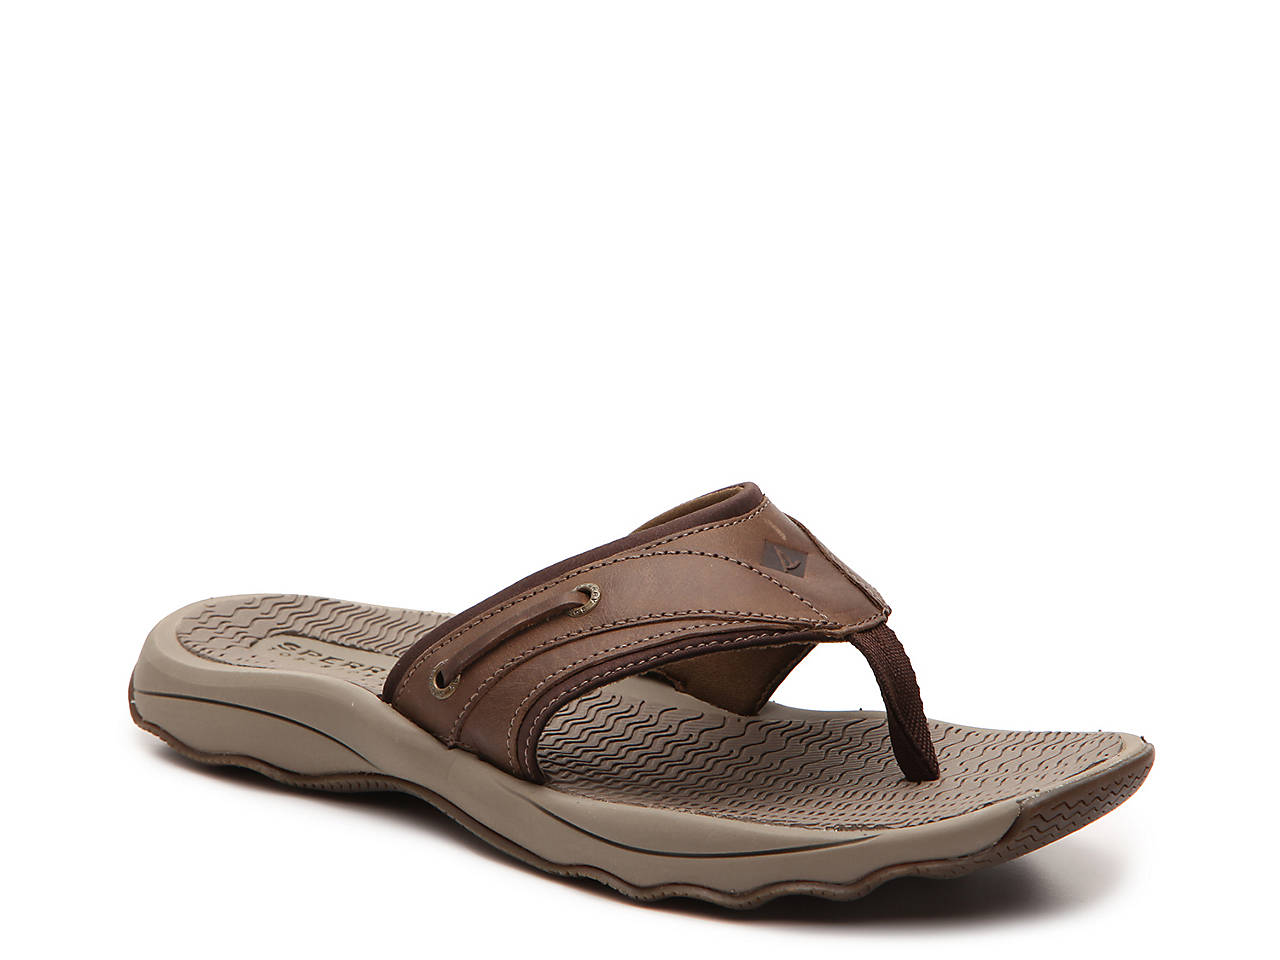 f9953517f Sperry Top-Sider Outer Banks Sandal Men s Shoes